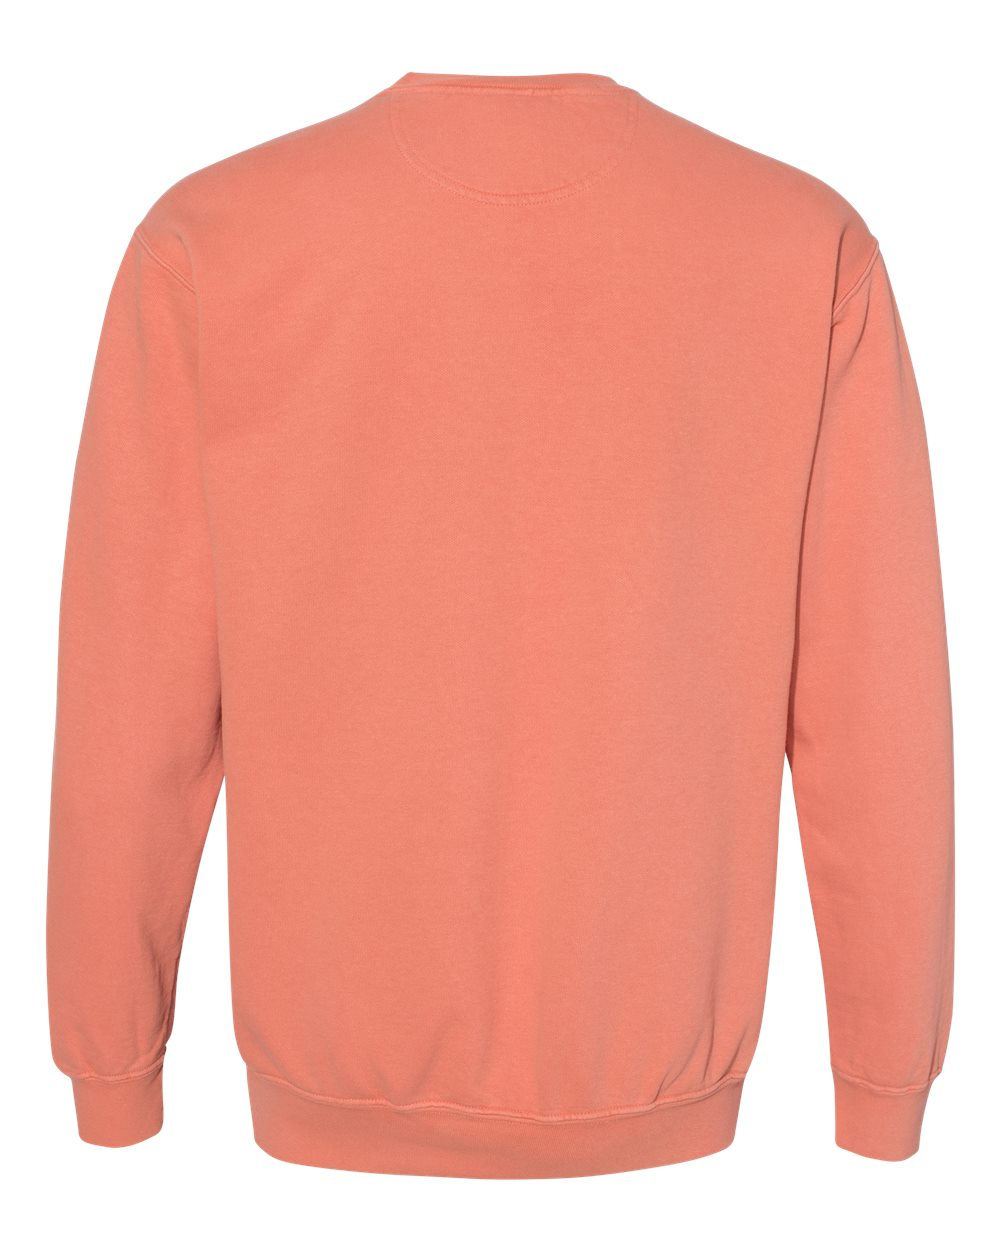 Comfort-Colors-Mens-Garment-Dyed-Ringspun-Crewneck-Sweatshirt-1566-up-to-3XL miniature 55